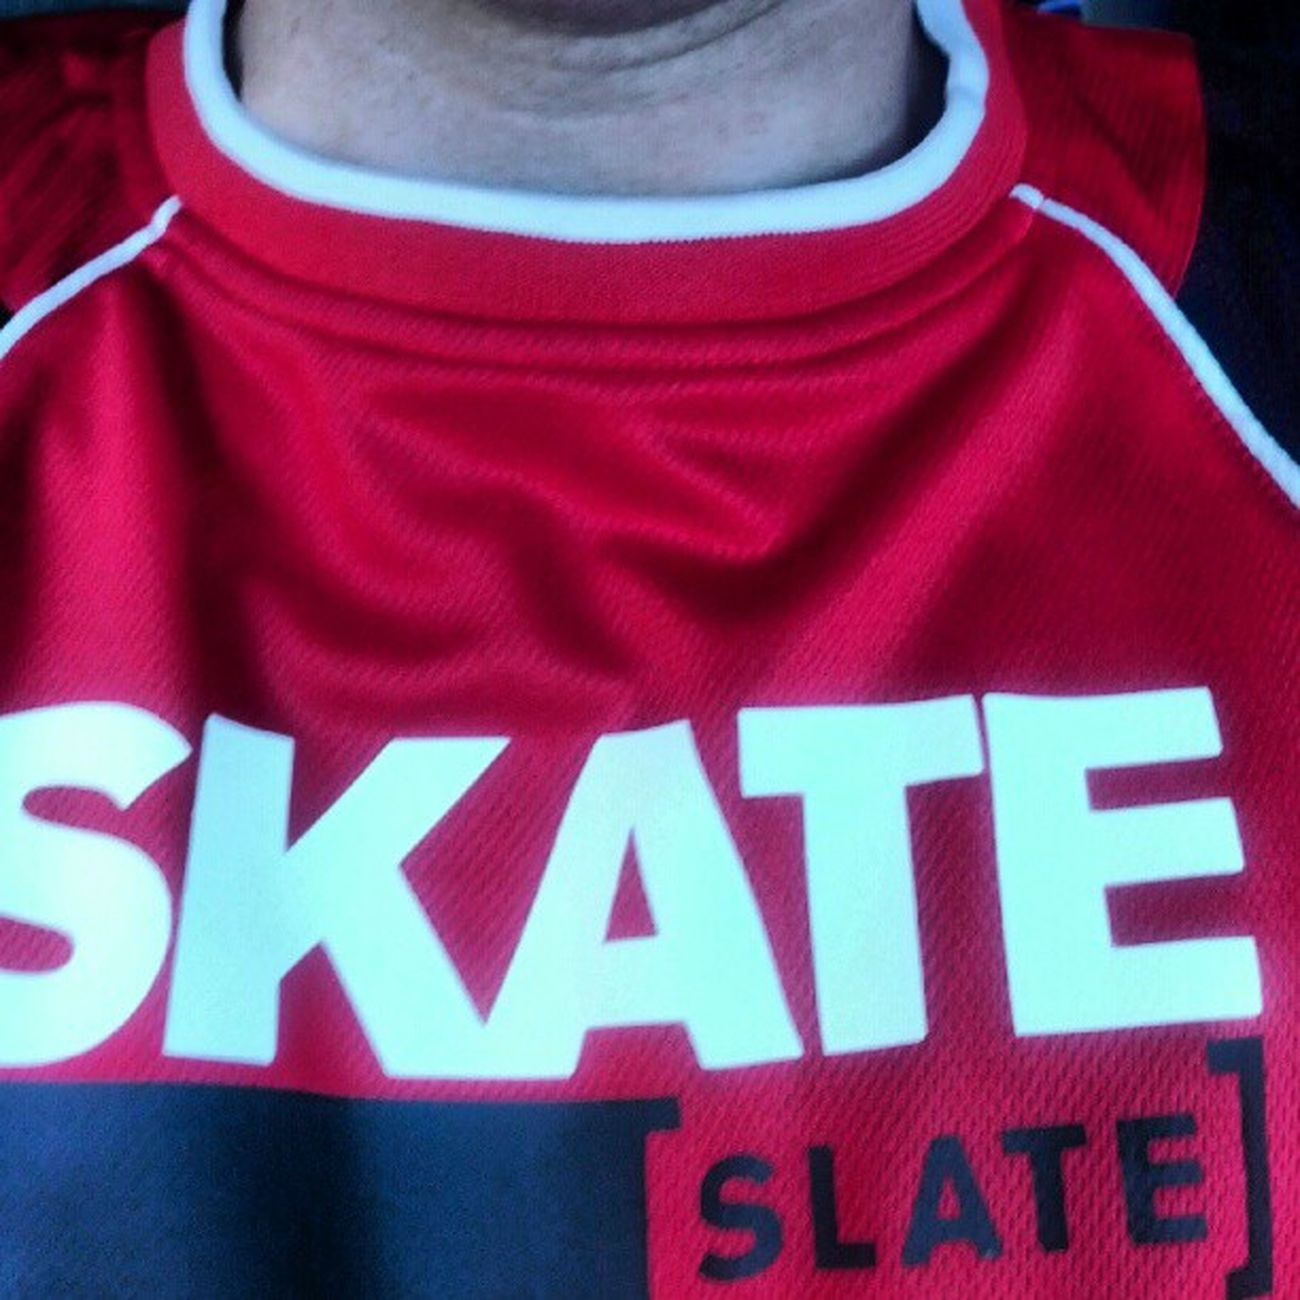 @skateslate jersey for @patrickswitzer Tantaluslodge : @justusz come for beers&hot tub/pool